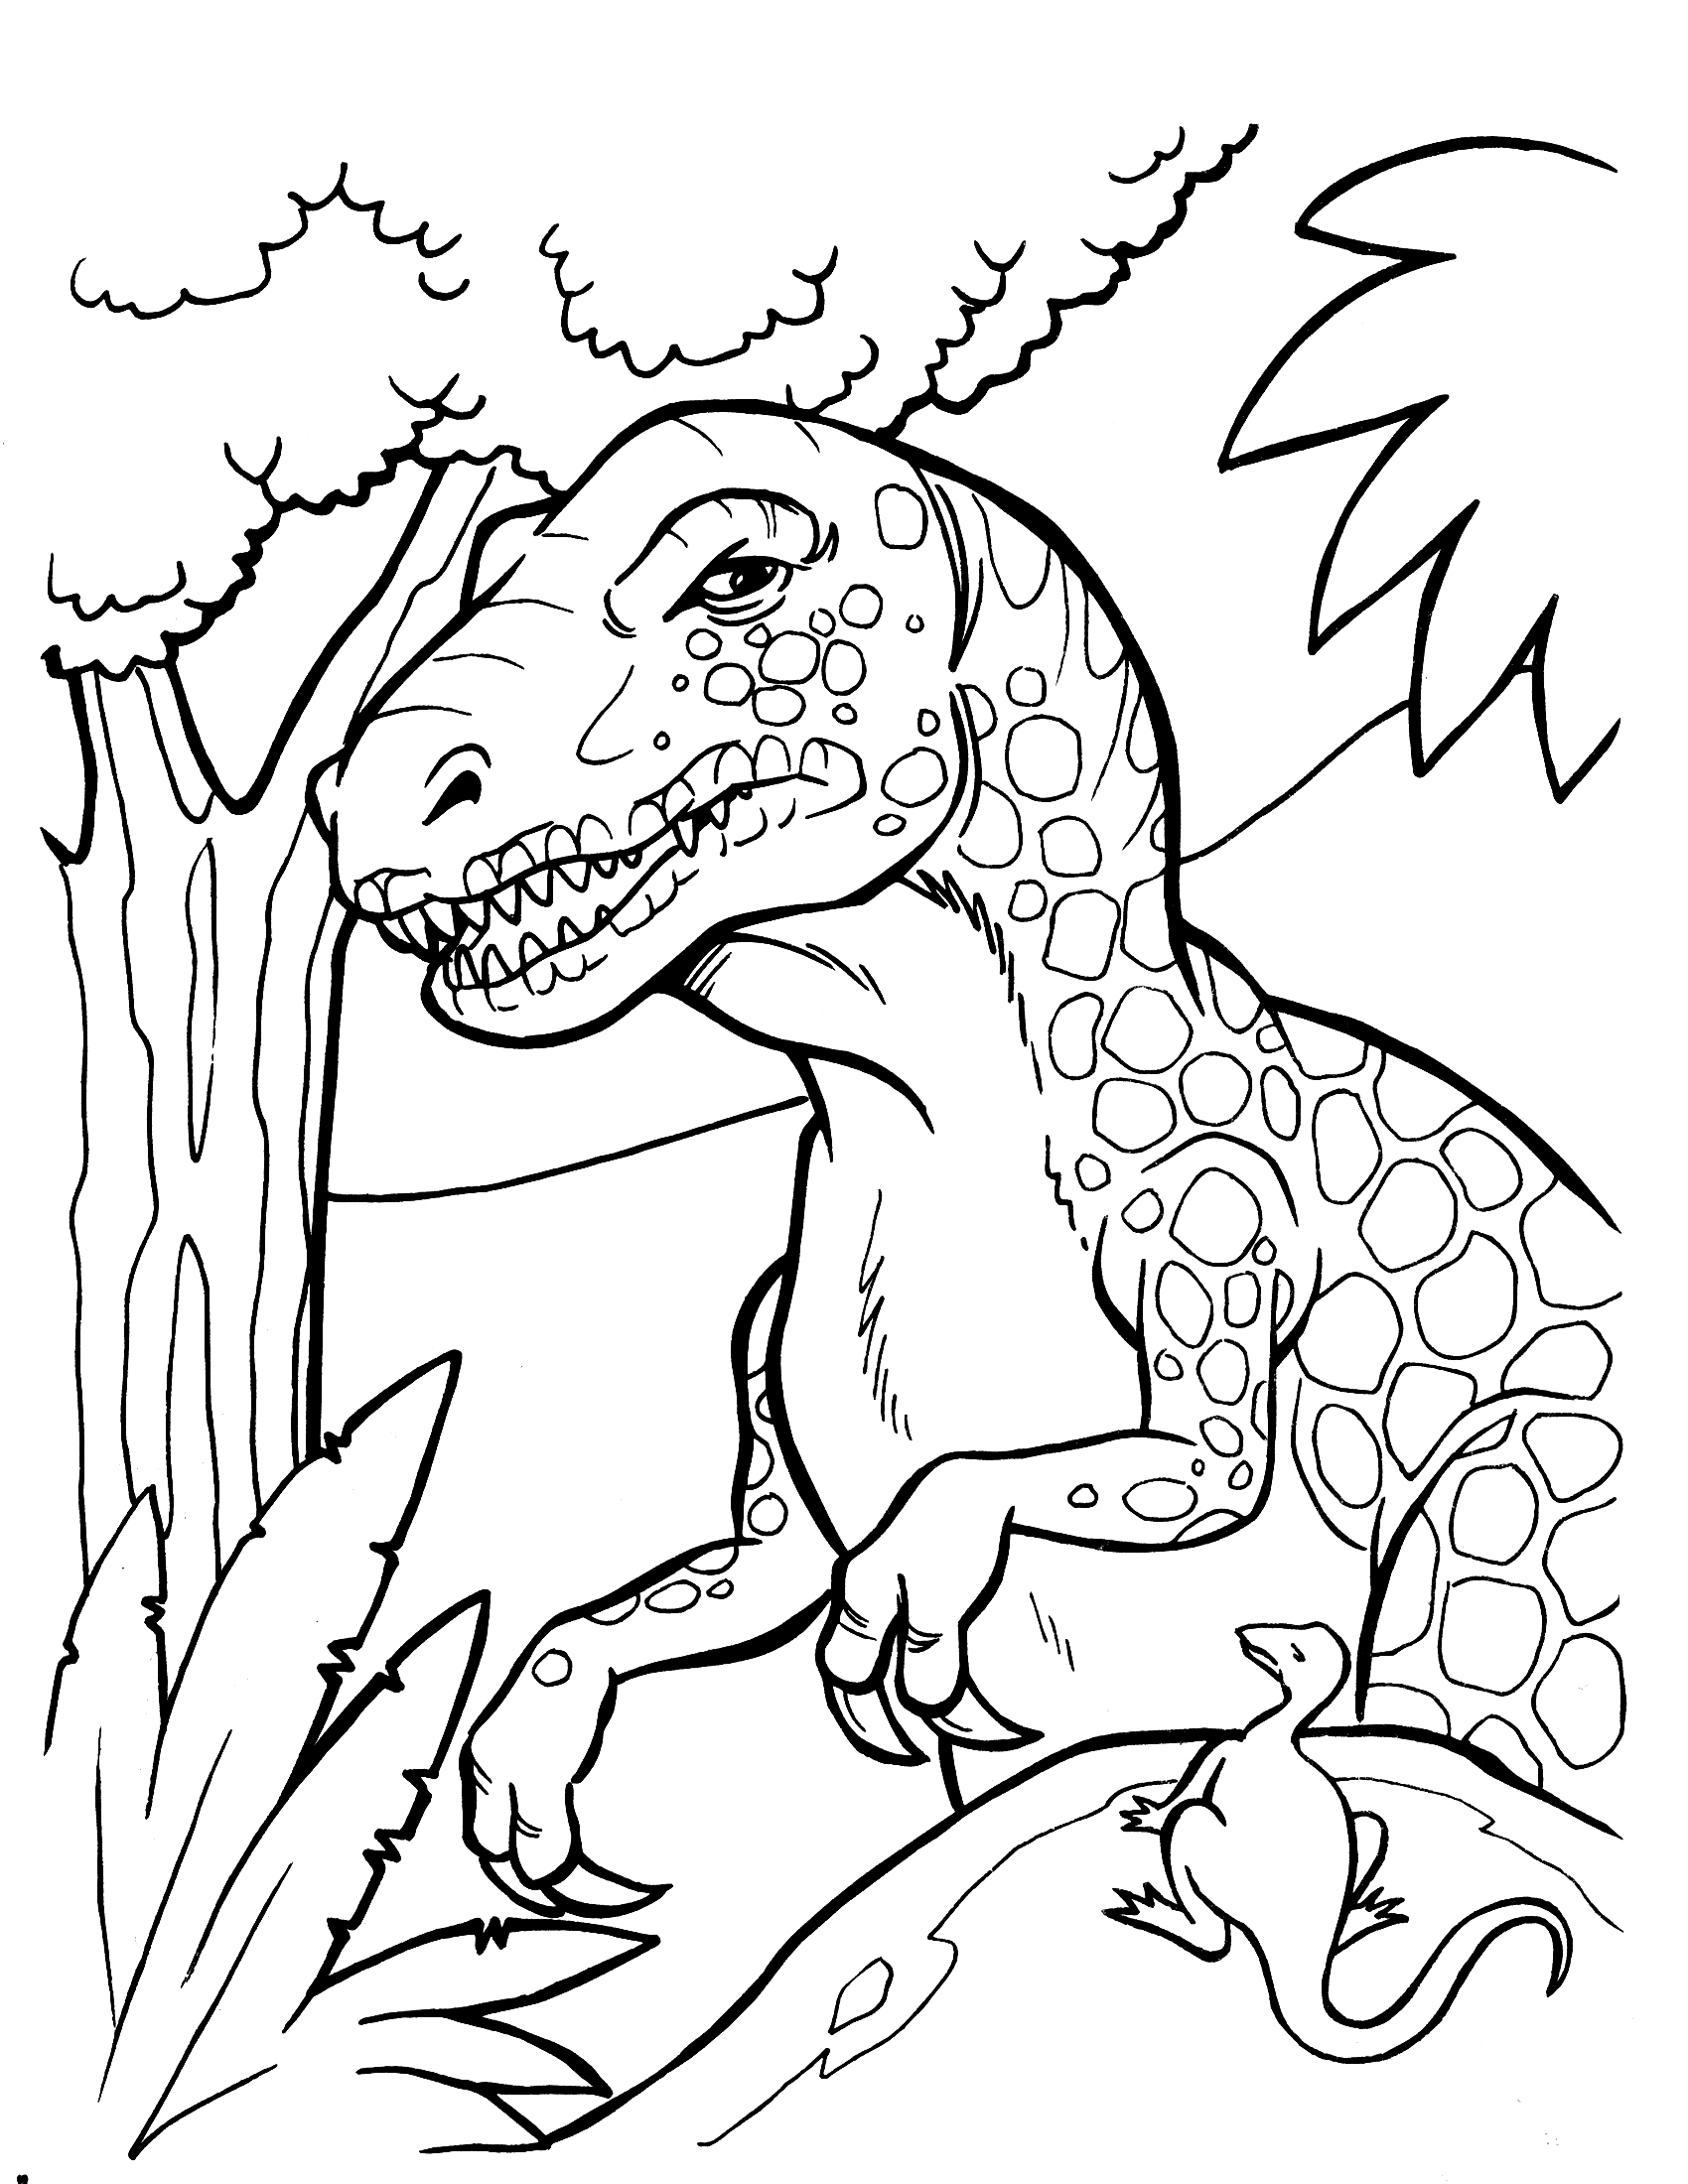 coloring dinosaurs coloring pages dinosaur free printable coloring pages coloring dinosaurs